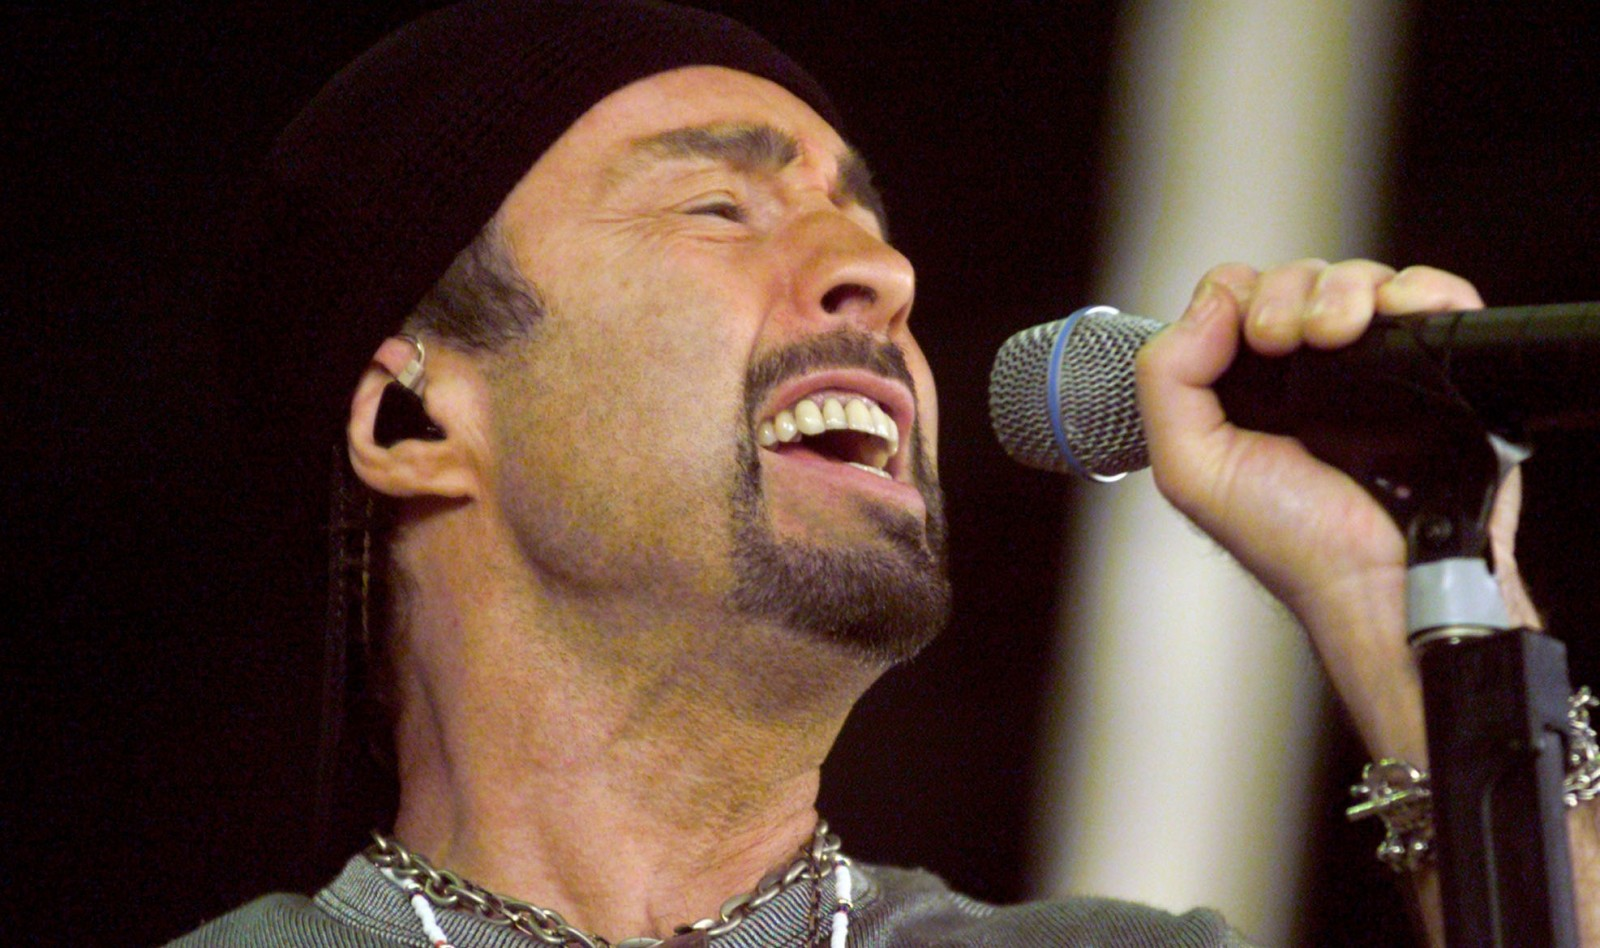 Paul Rodgers and Bad Company are headed to Darien Lake (Getty Images)